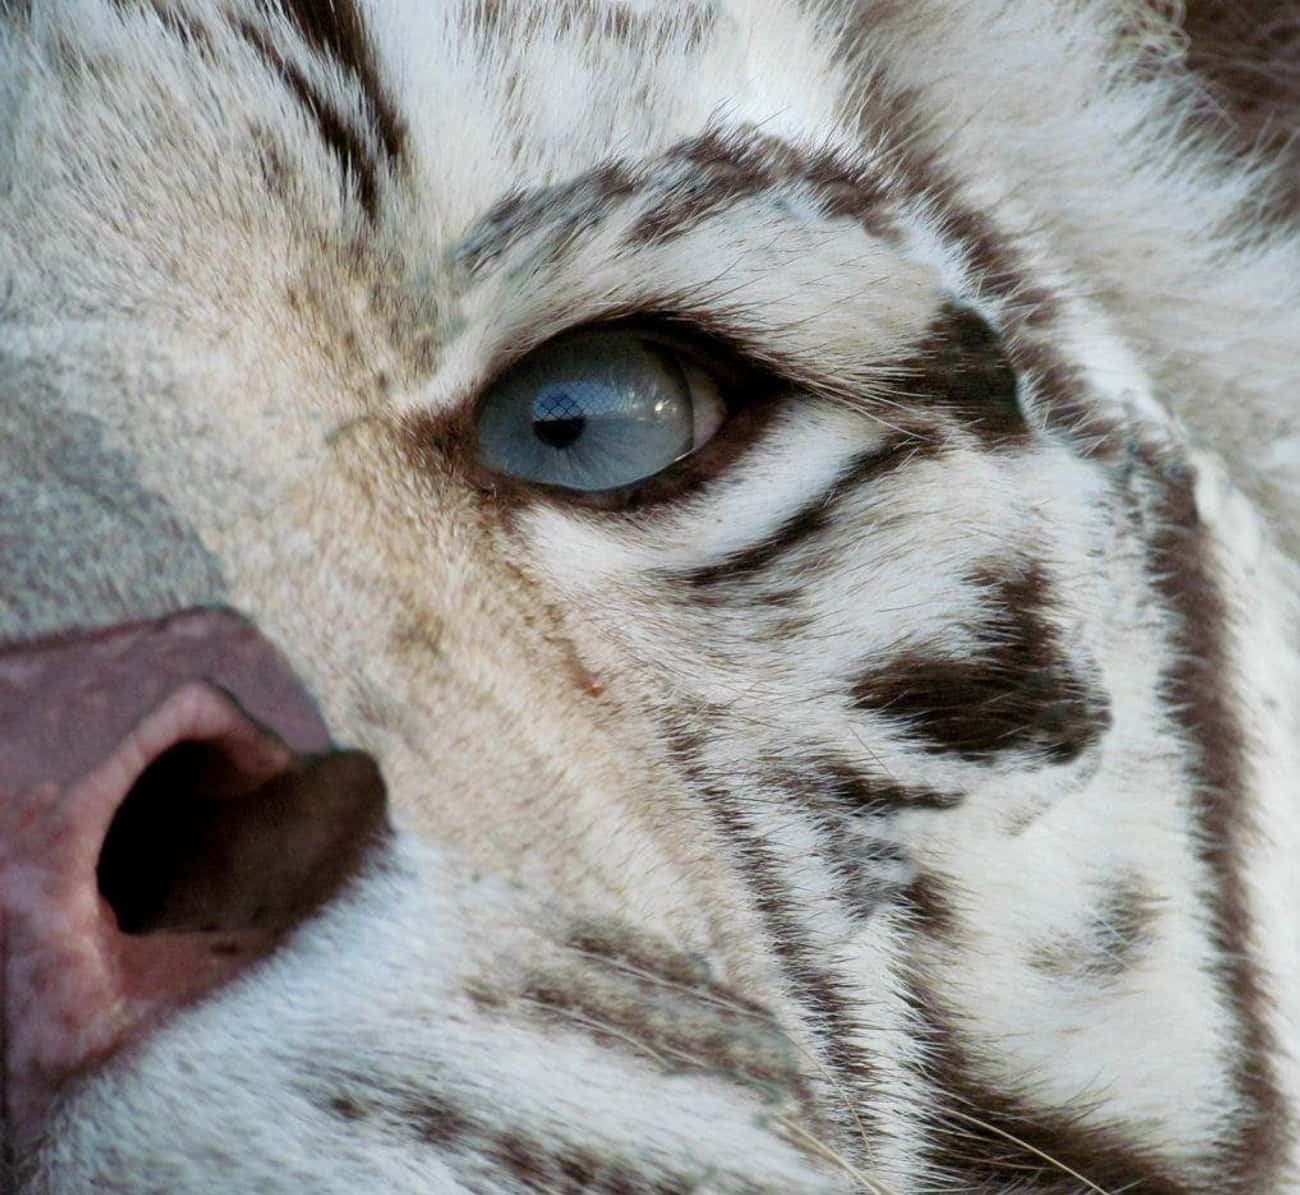 White Tigers Have Beautiful Bl is listed (or ranked) 3 on the list 21 Animals With Utterly Unique, Mesmerizing Eyes